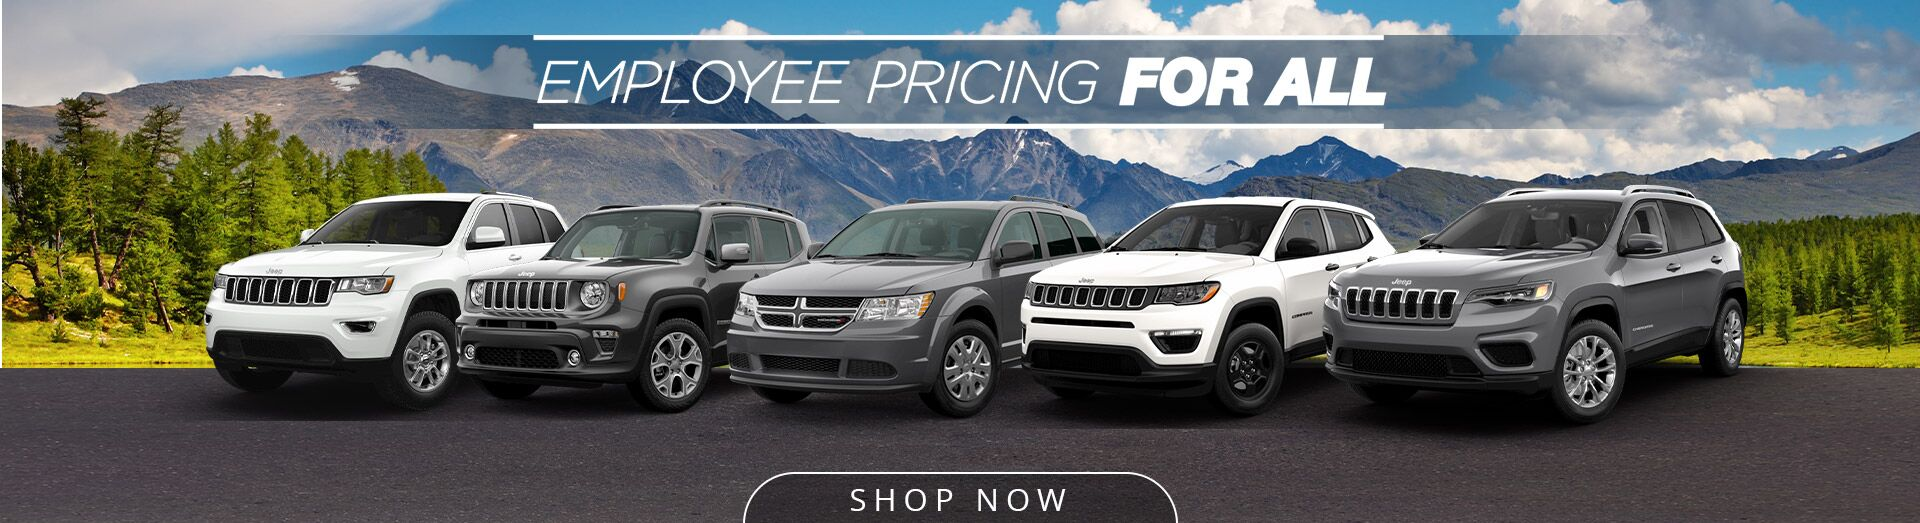 Employee Pricing - Dodge and Jeep